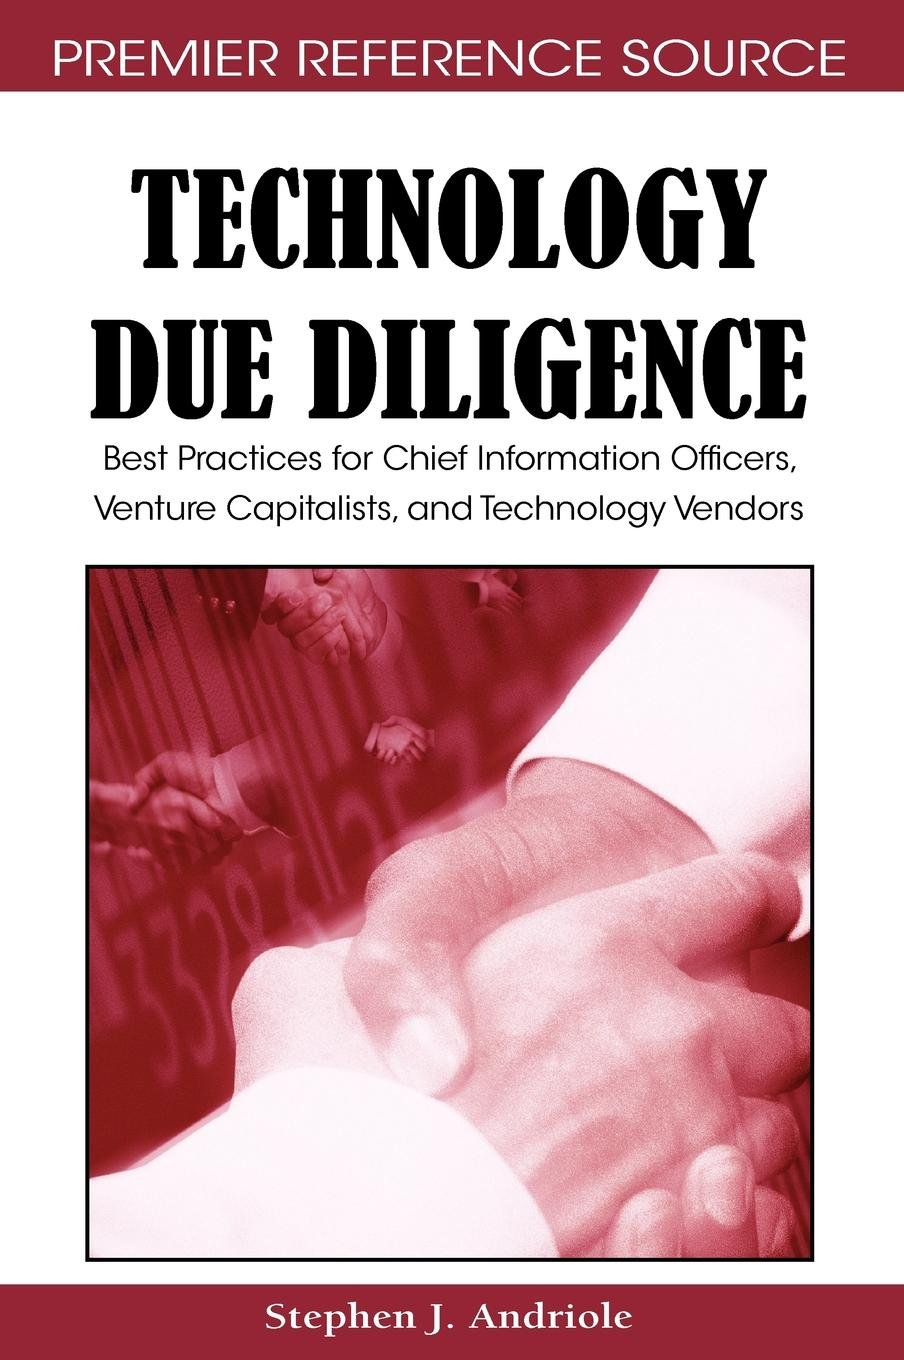 Technology Due Diligence  Best Practices For Chief Information Officers Venture Capitalists And Technology Vendors